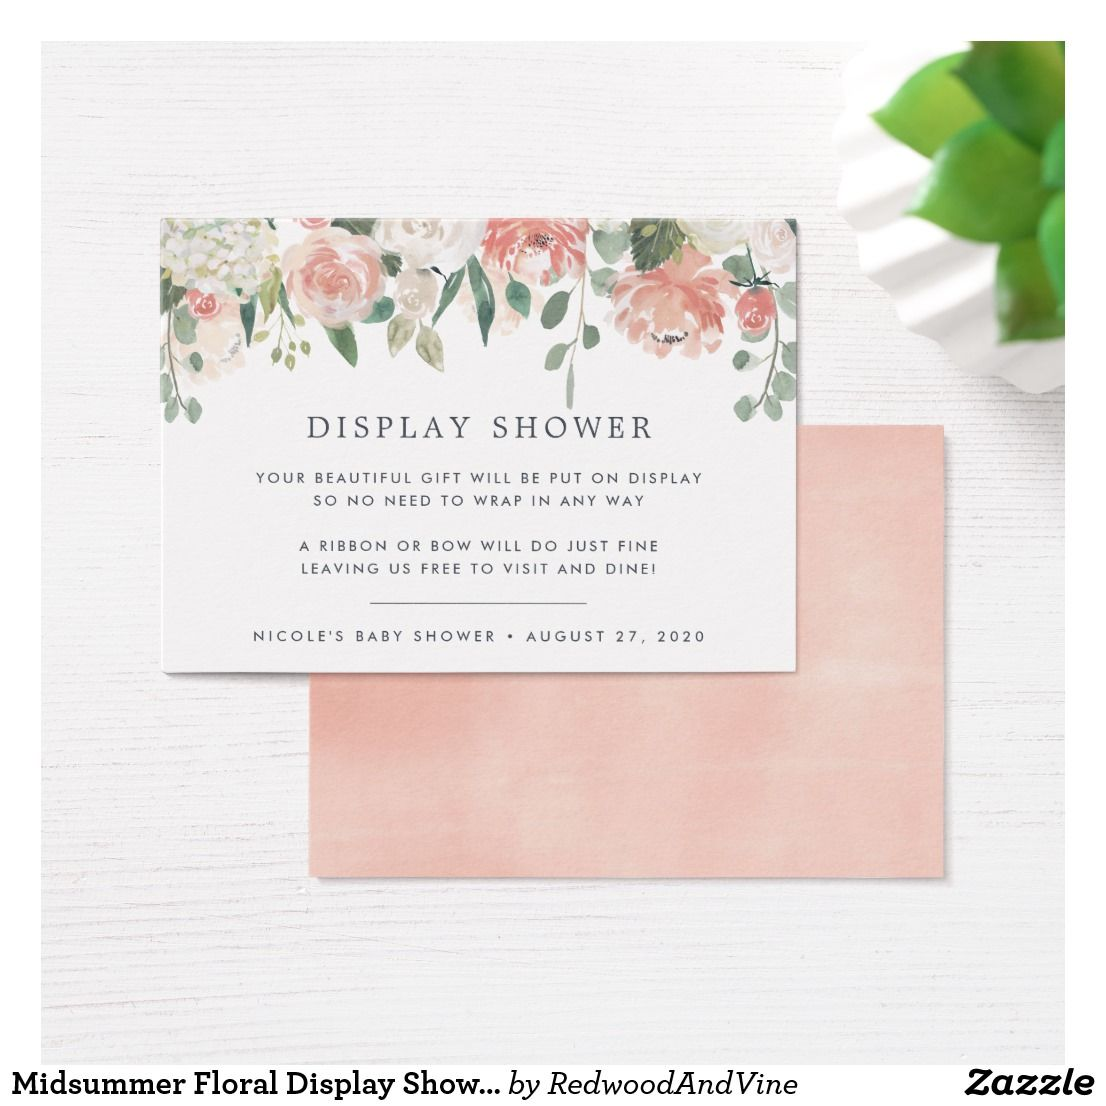 4b44d6cea614 ... petite cards into your baby shower or bridal shower invitations when  requesting that guests bring their gifts unwrapped. Pastel watercolor  floral design ...